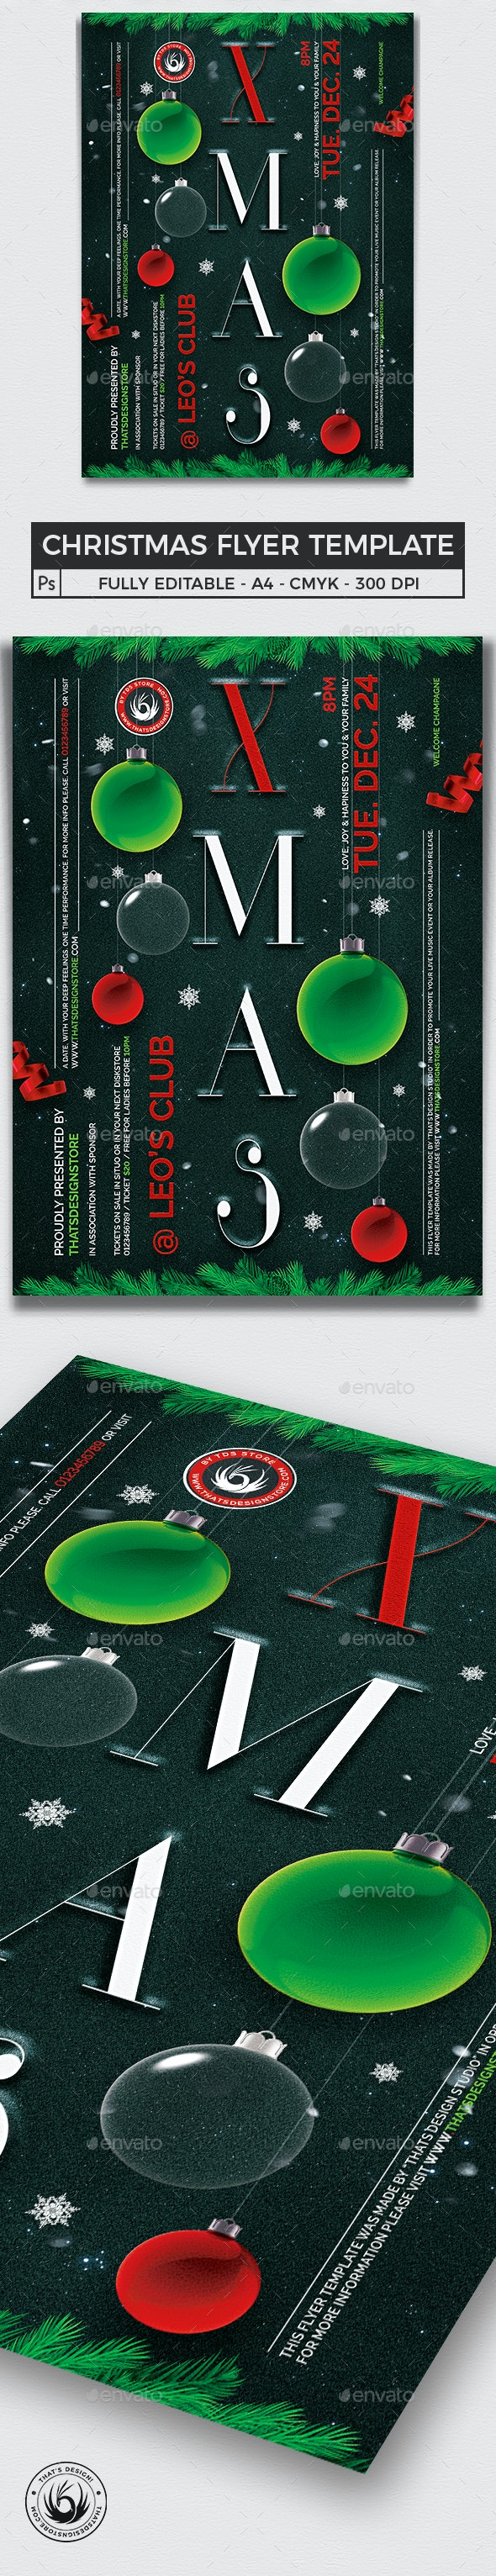 Christmas Eve Flyer Template V13 - Holidays Events